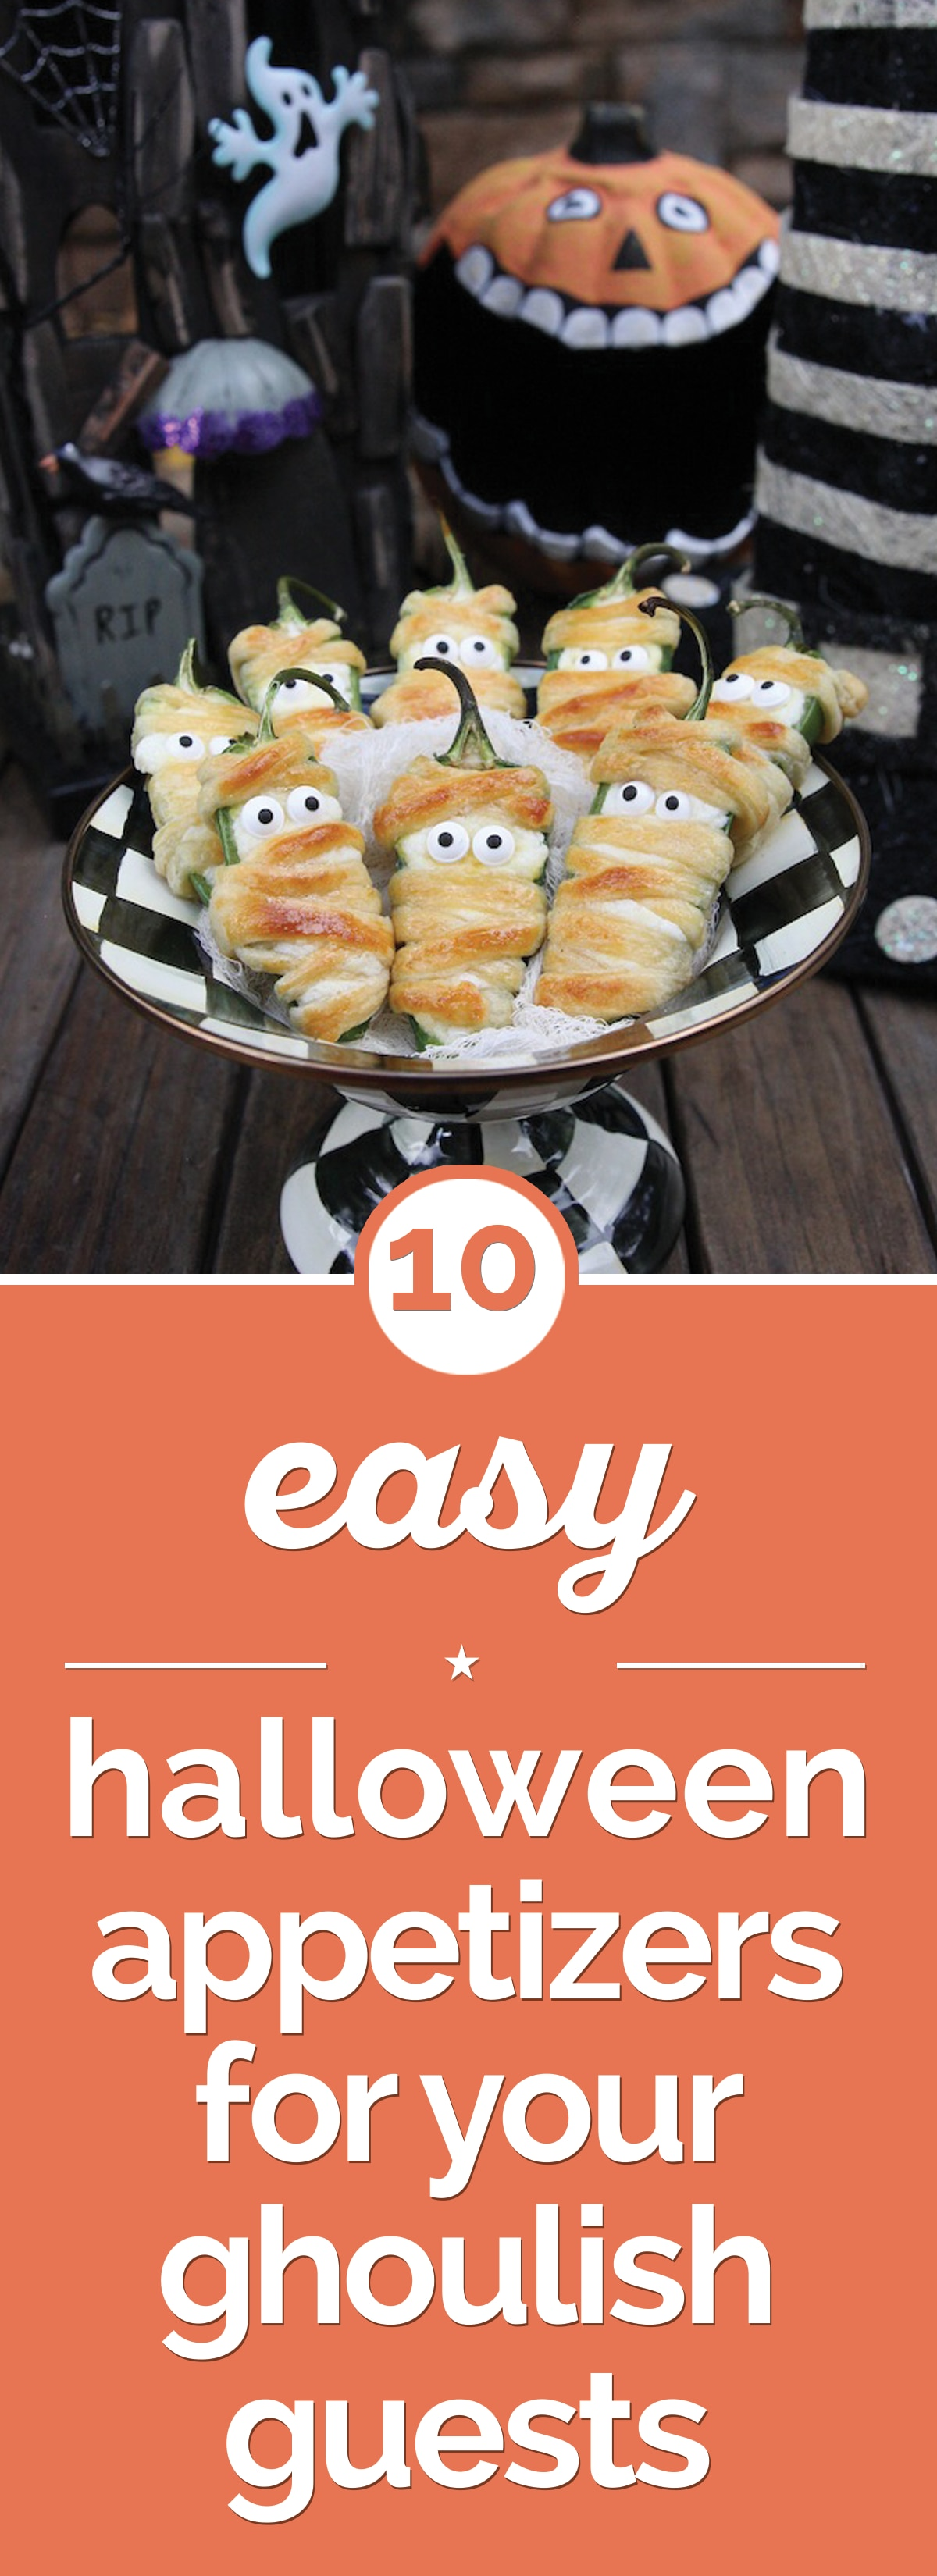 10 Easy Halloween Appetizers for Your Ghoulish Guests | thegoodstuff